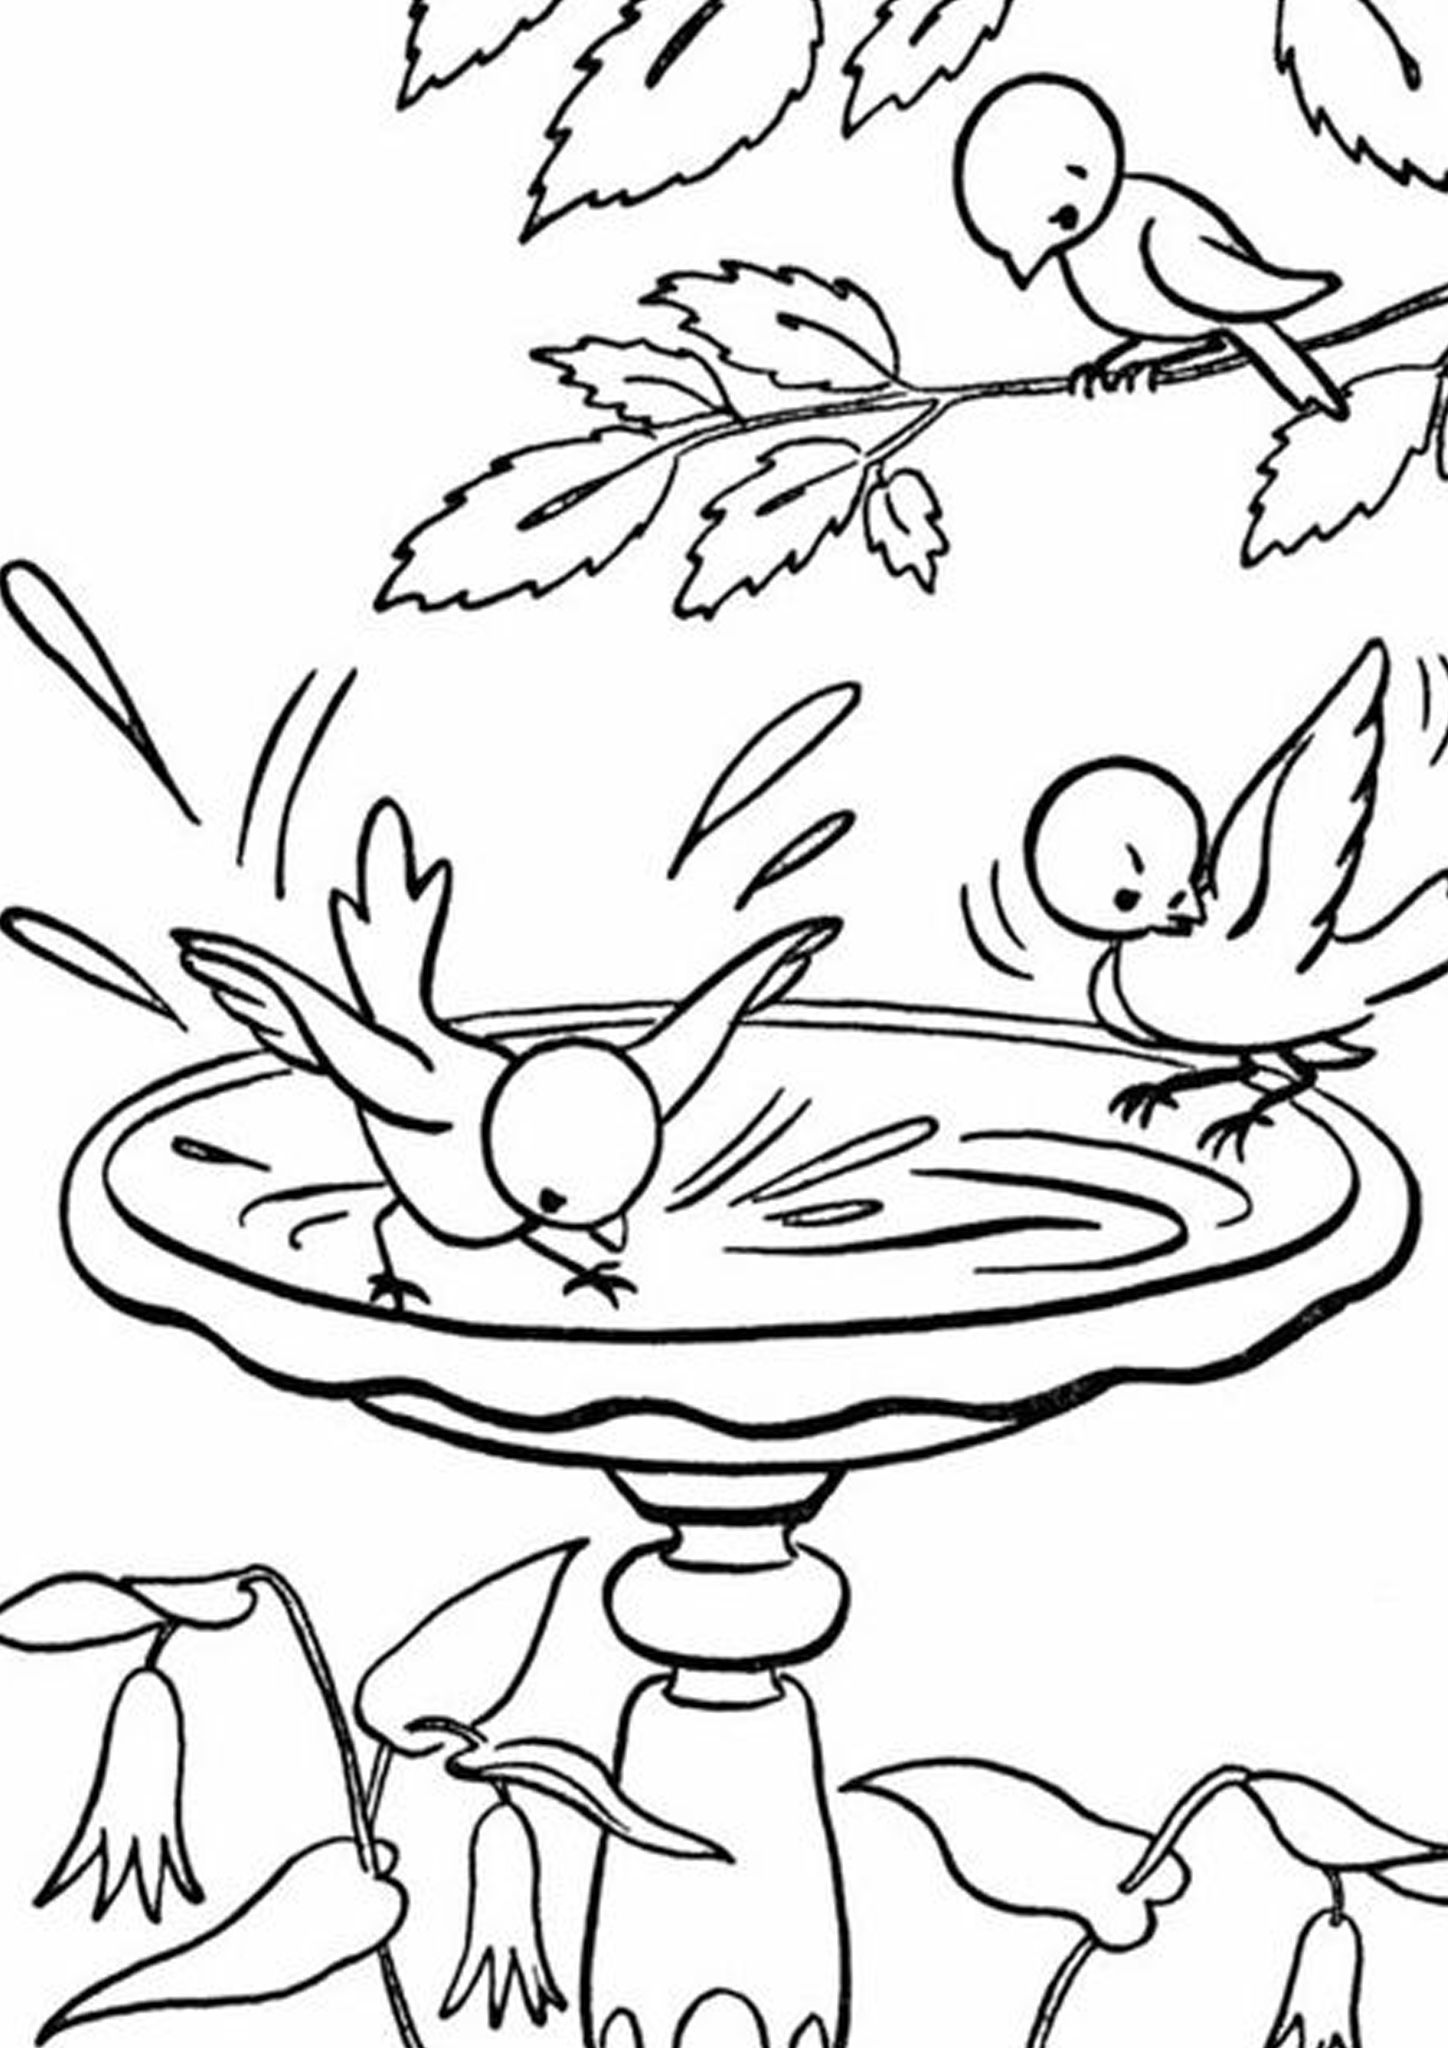 free printable coloring pages birds free easy to print bird coloring pages in 2020 bird free coloring pages birds printable